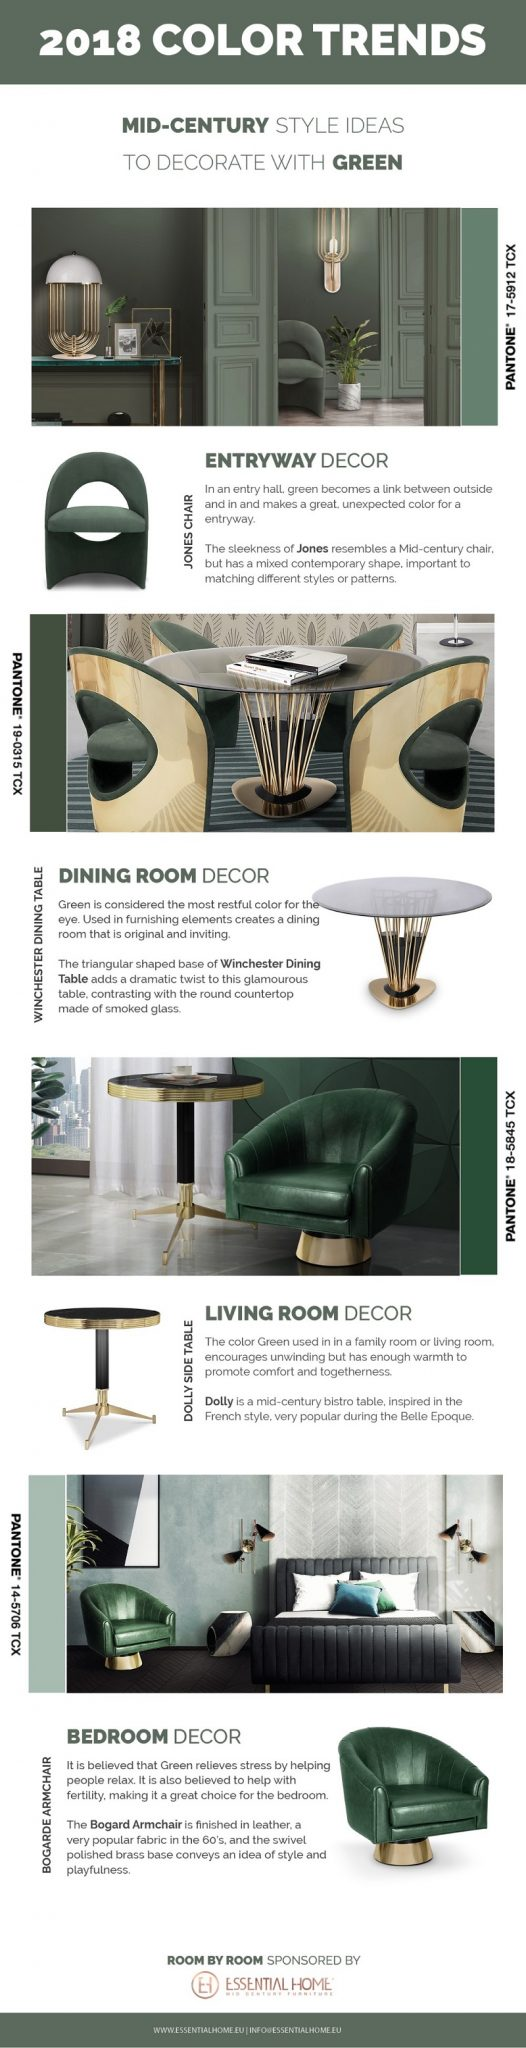 2018 Color Trends - Mid Century Home Decor Ideas With Green ➤ To see more news about Luxury Design visit us at http://covetedition.com/ #interiordesign #homedecor #luxurybrand @BathroomsLuxury @bocadolobo @delightfulll @brabbu @essentialhomeeu @circudesign @mvalentinabath @luxxu @covethouse_ 2018 color trends 2018 Color Trends - Mid Century Home Decor Ideas With Green 2018 Color Trends Rocking a Green Decor in Your Mid Century Home info